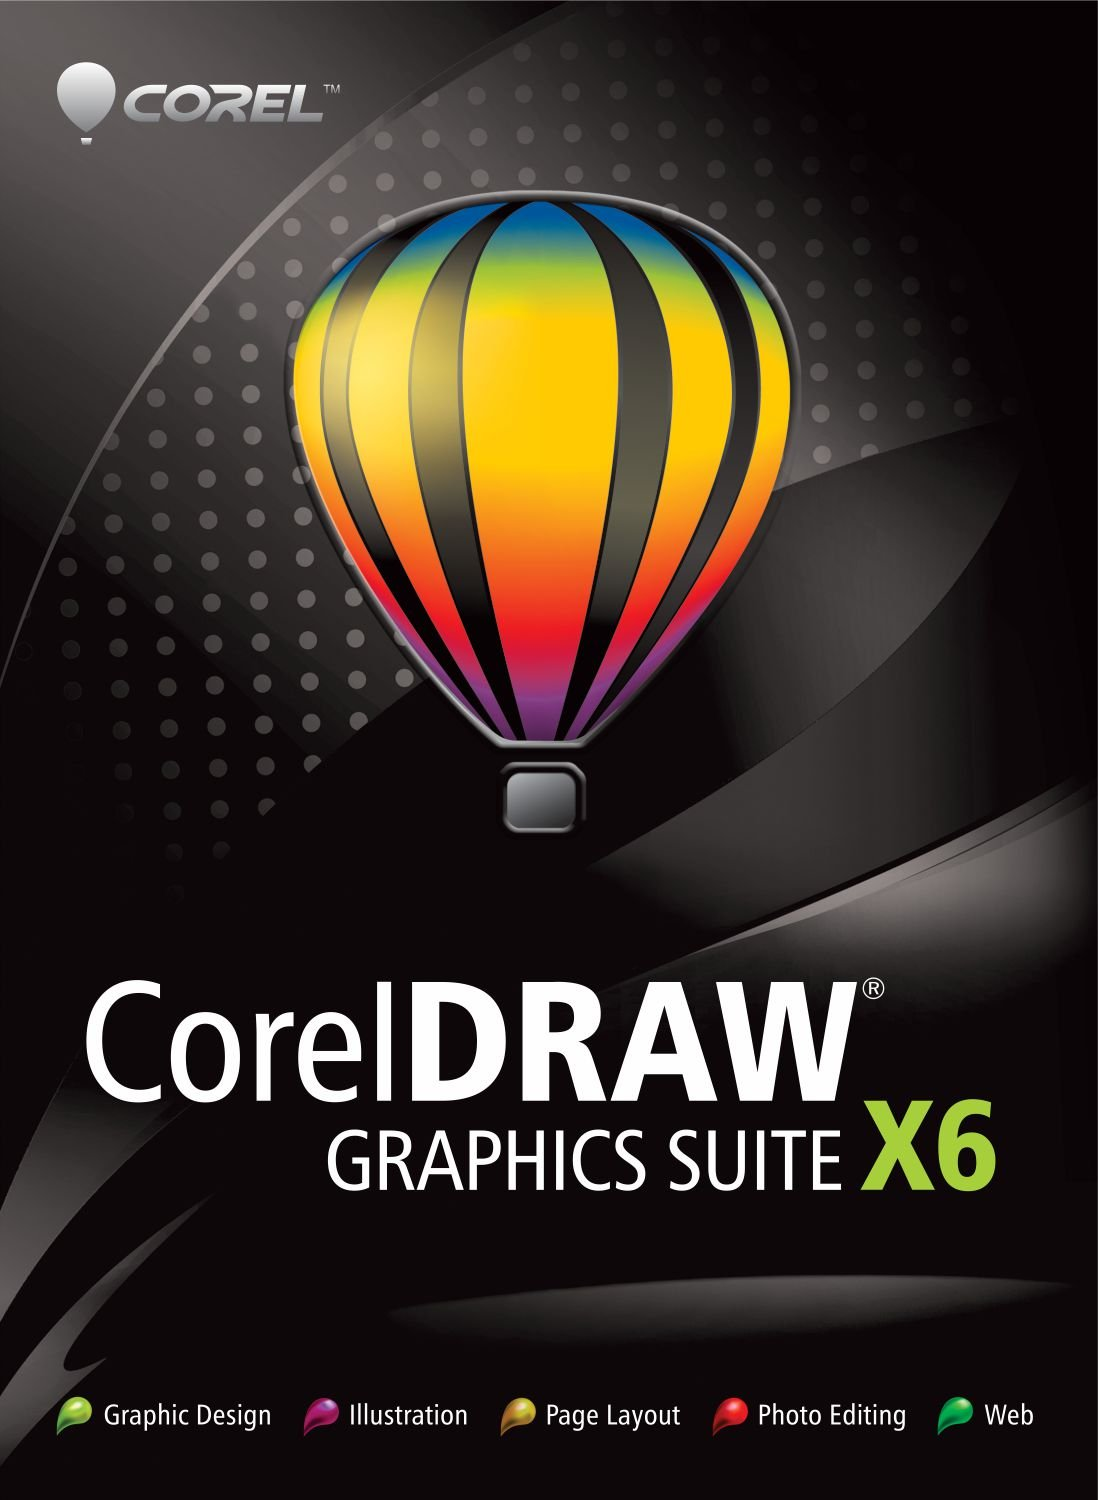 Corel draw version compatible with windows 10 - Corel Draw Version Compatible With Windows 10 52